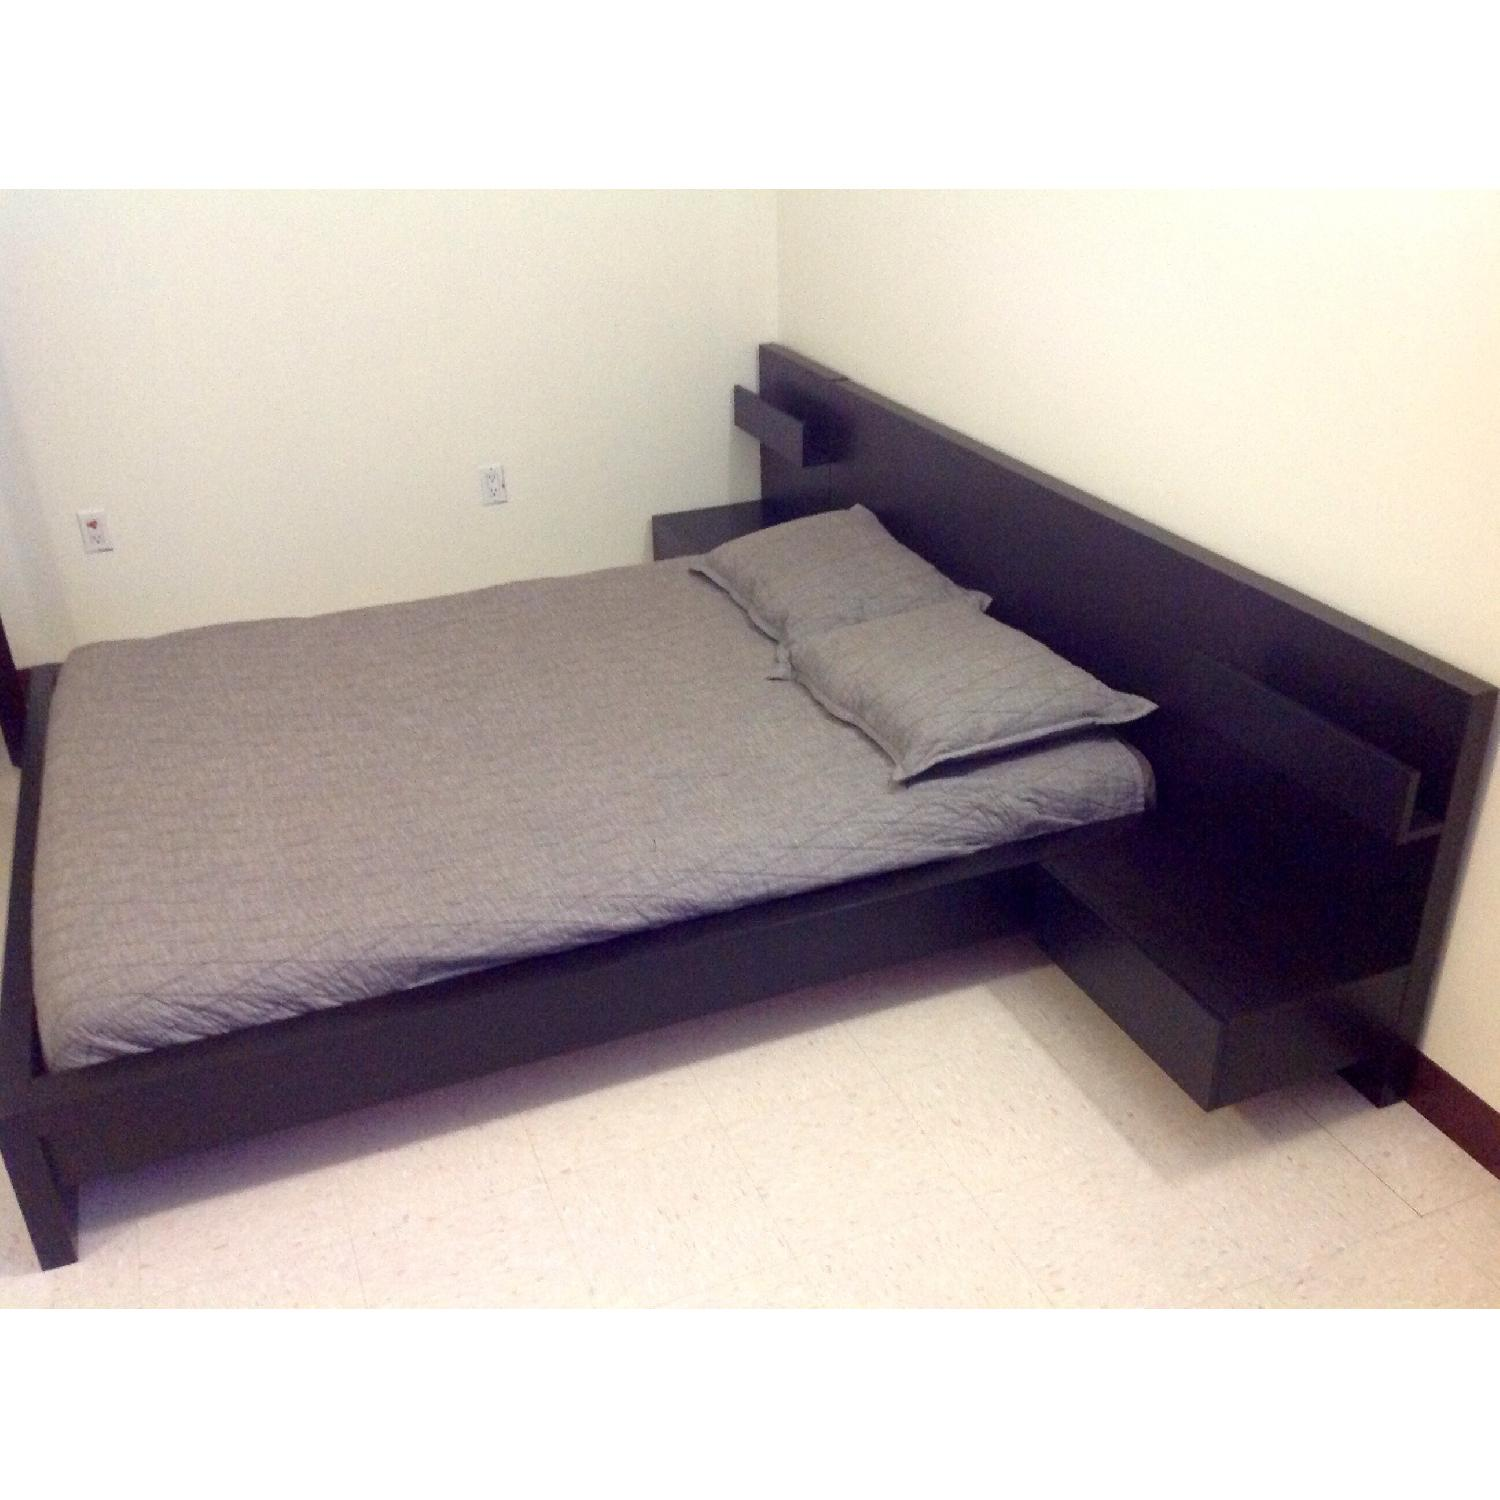 Used ikea malm queen size bed two for sale in nyc aptdeco - Malm bed with nightstands ...